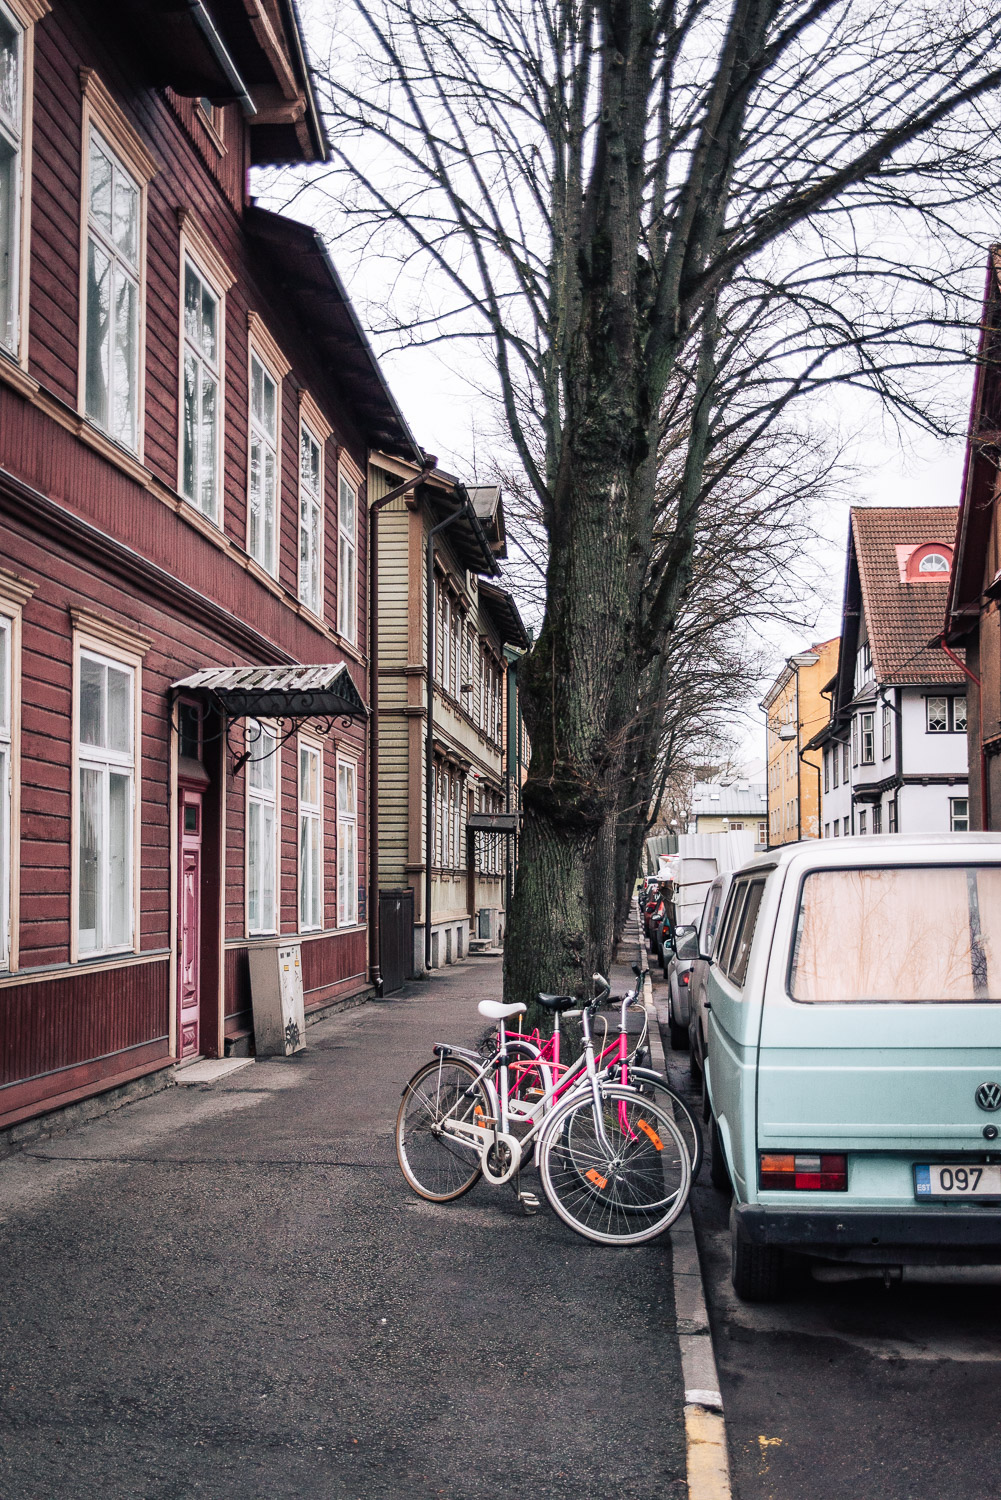 Kalamaja, formerly the town's main fishing harbour, is a charming residential area known for its colourful houses and doors | A day trip to Tallinn from Helsinki